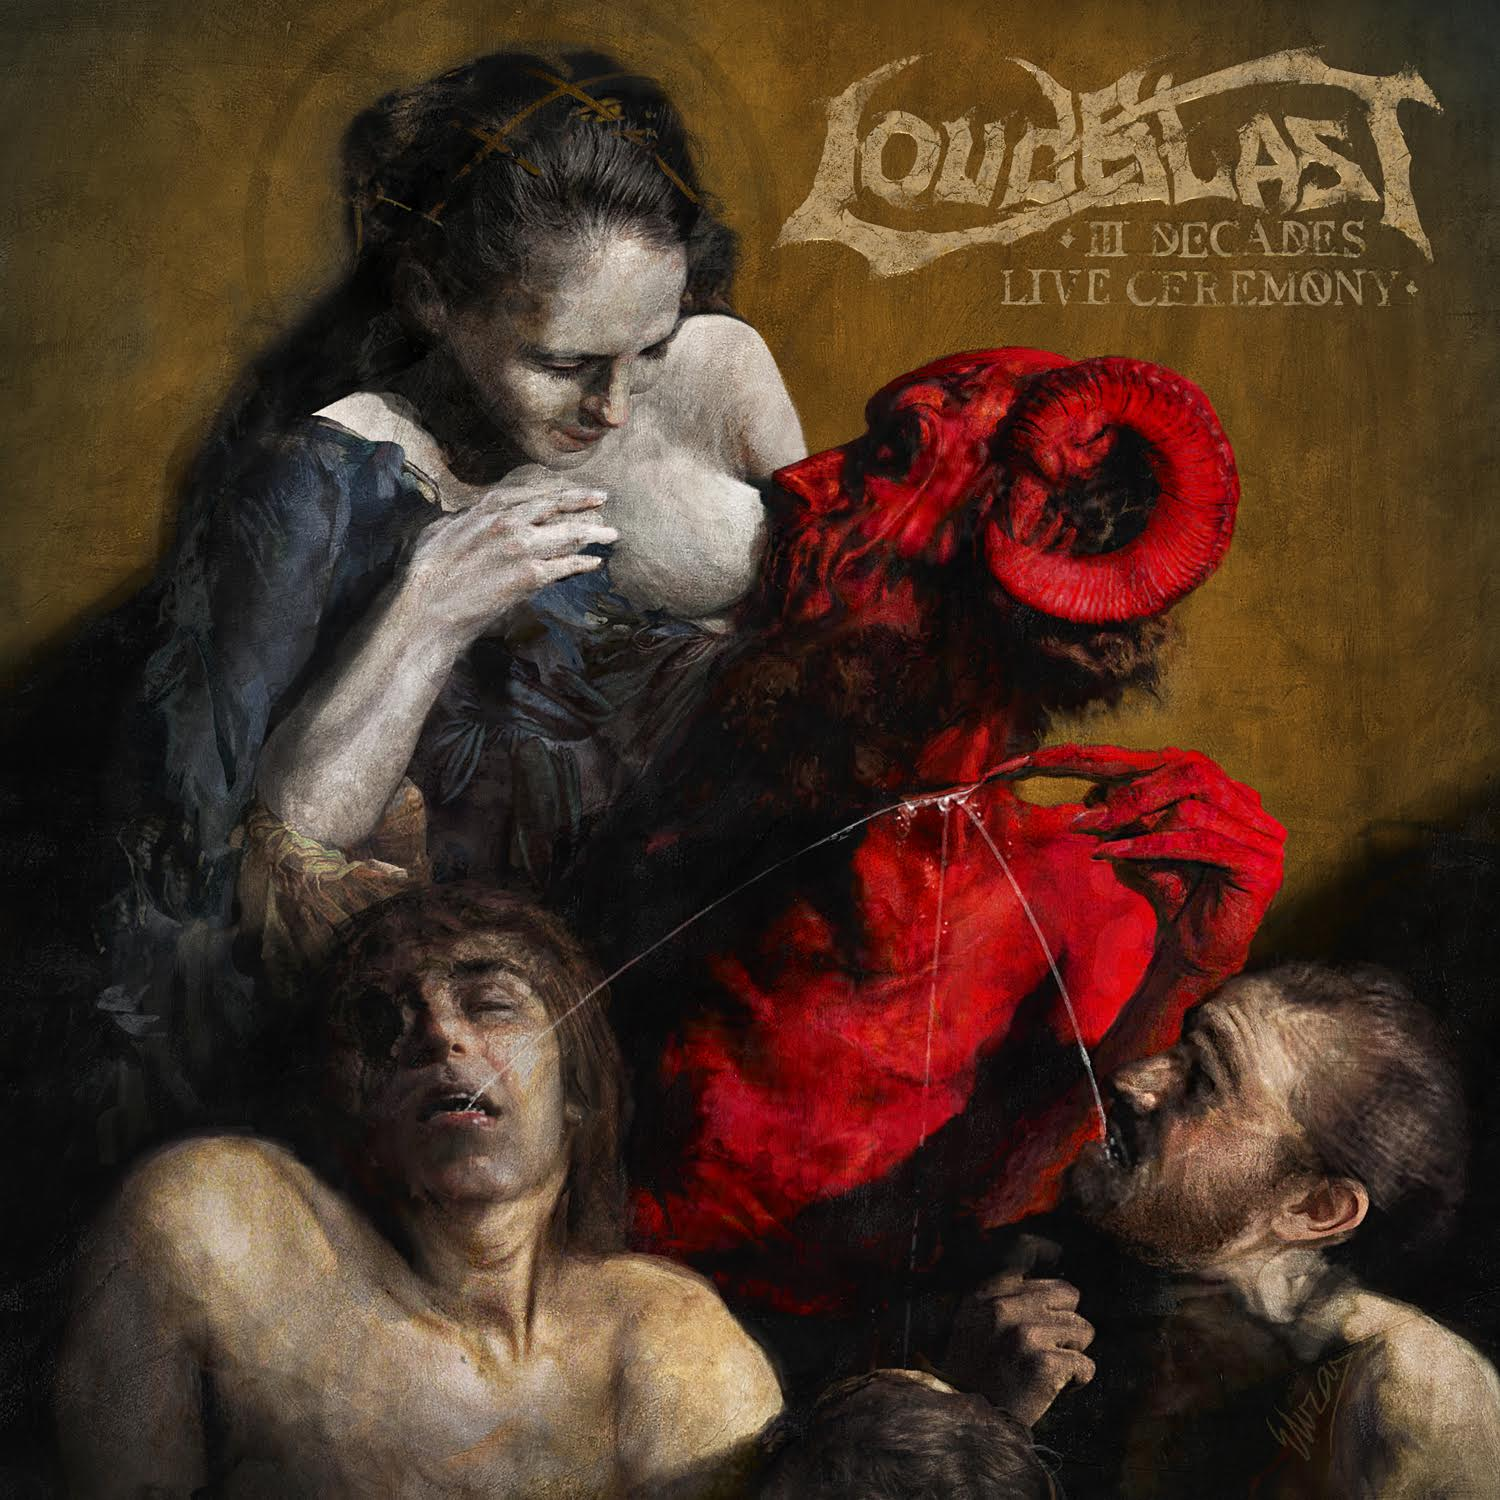 You are currently viewing LOUDBLAST <br/> III Decades Live Ceremony